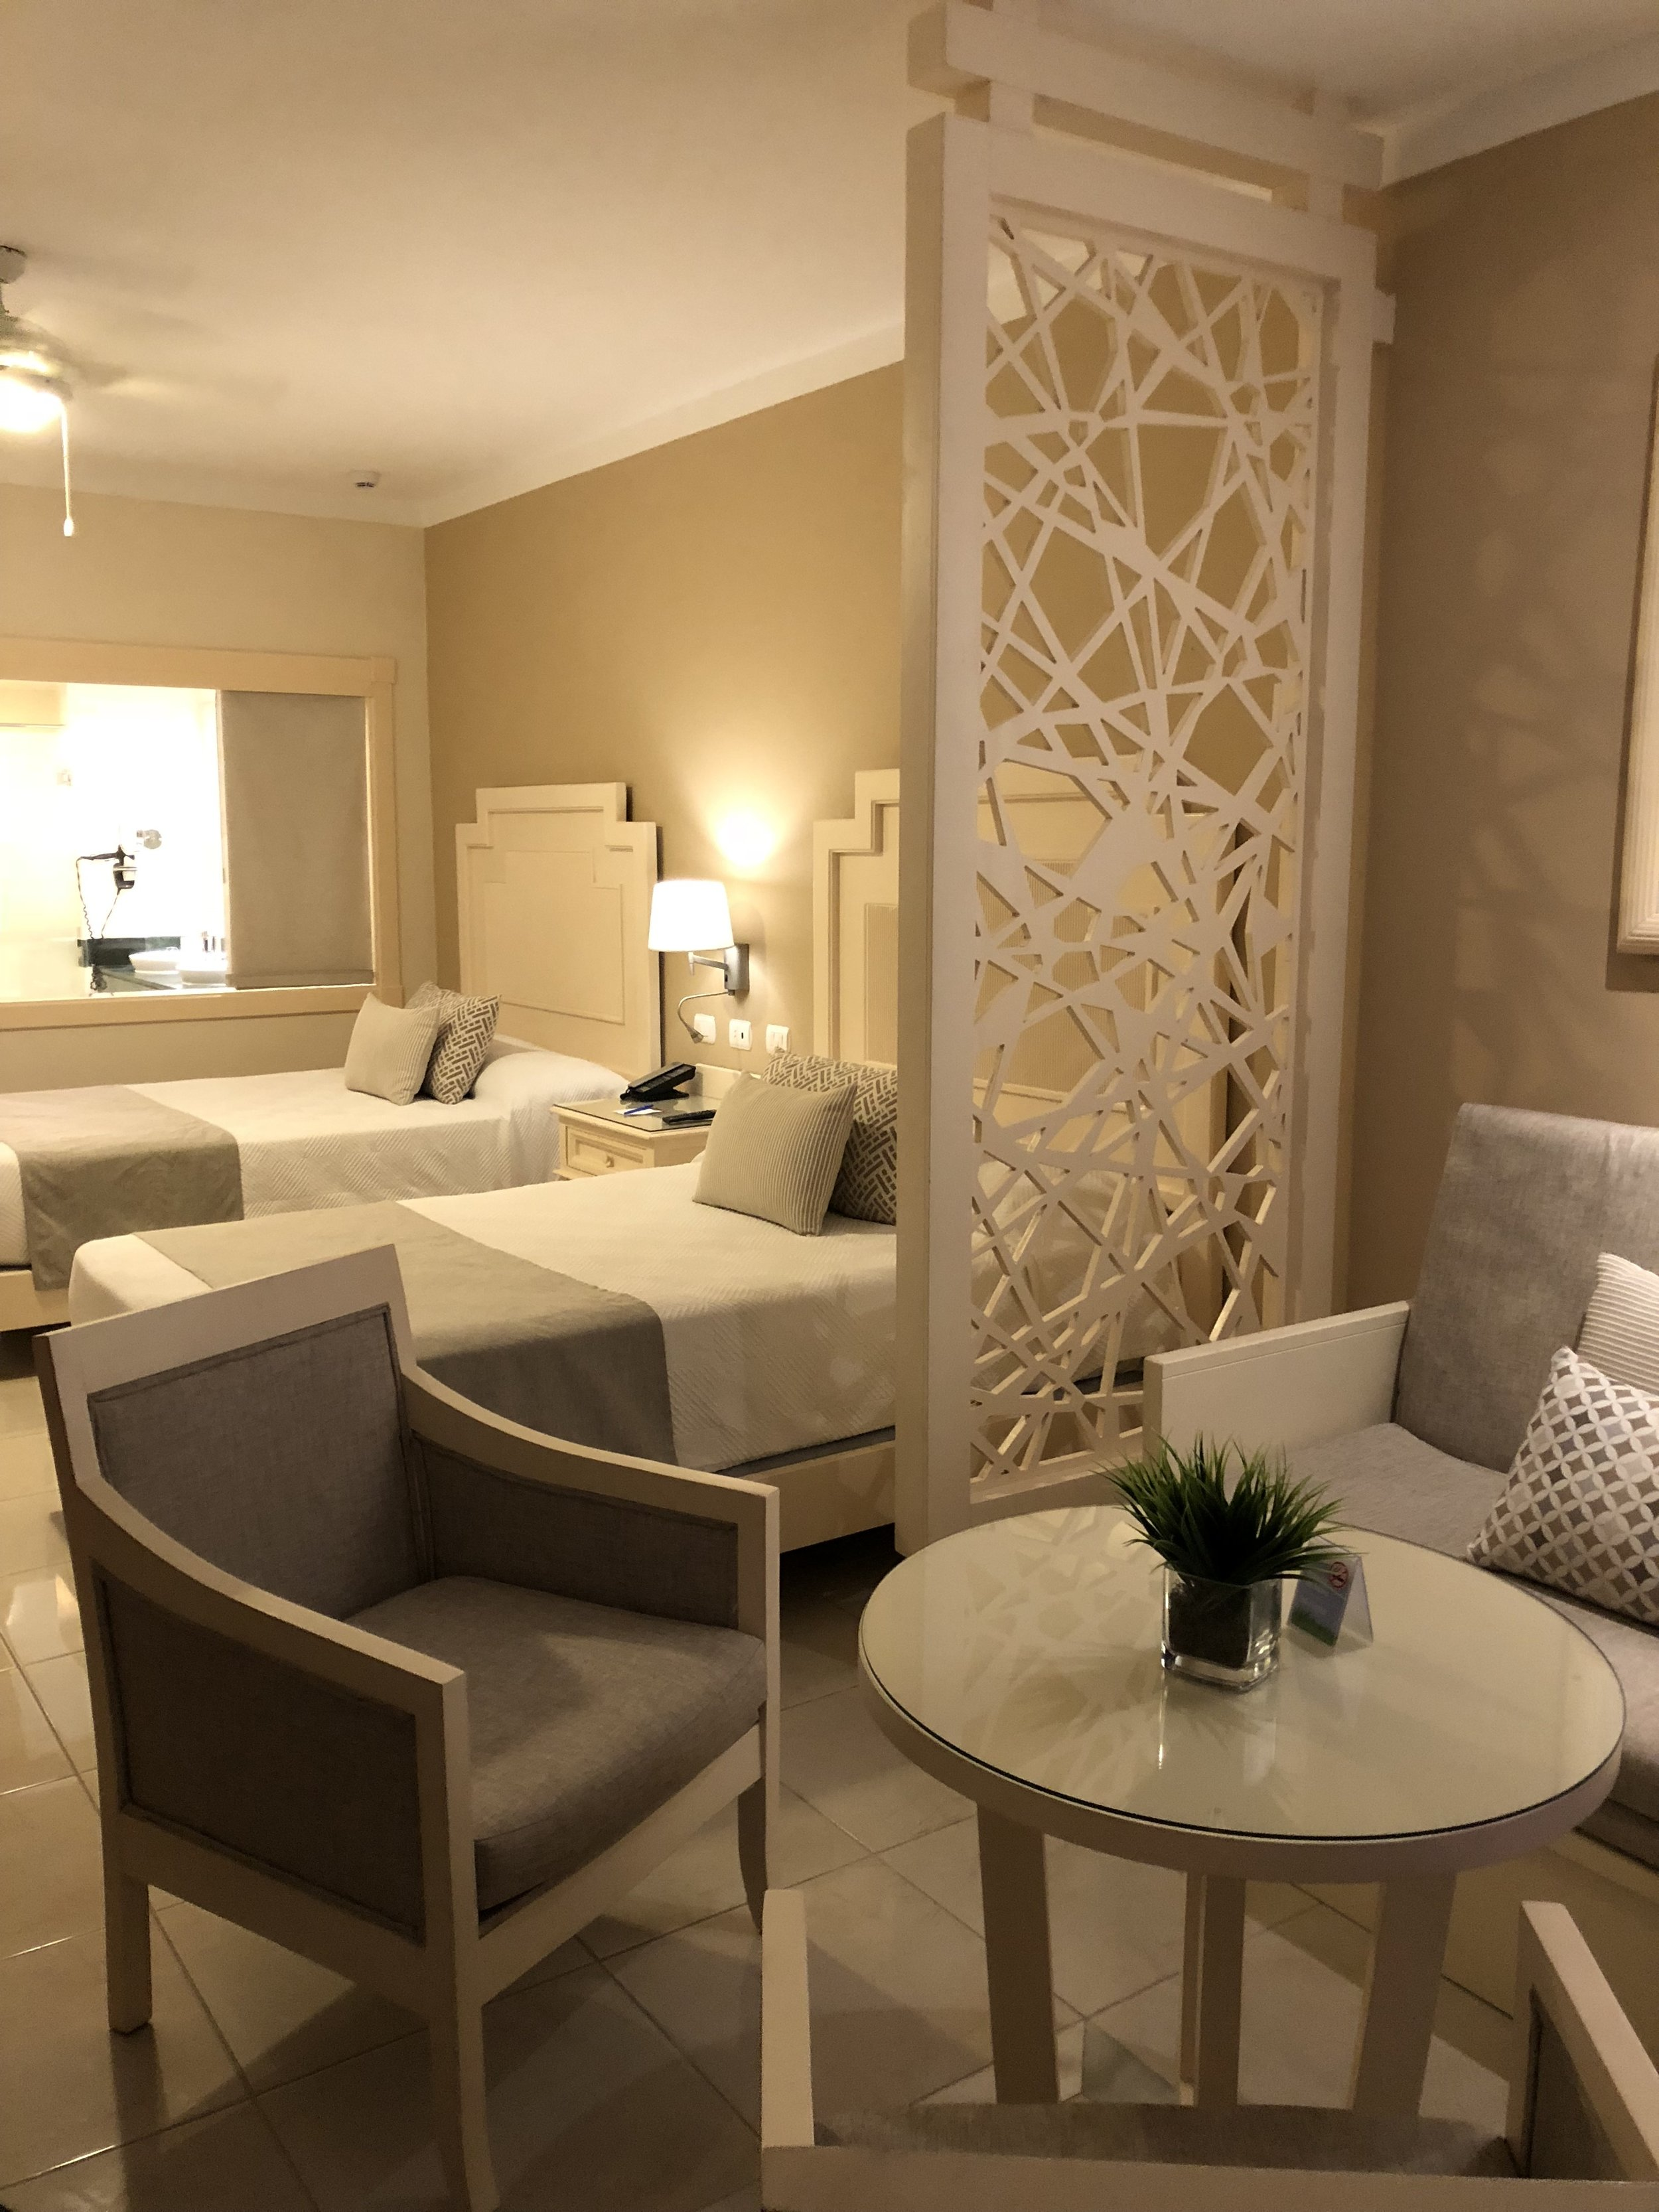 View of the double beds in the junior suite deluxe.